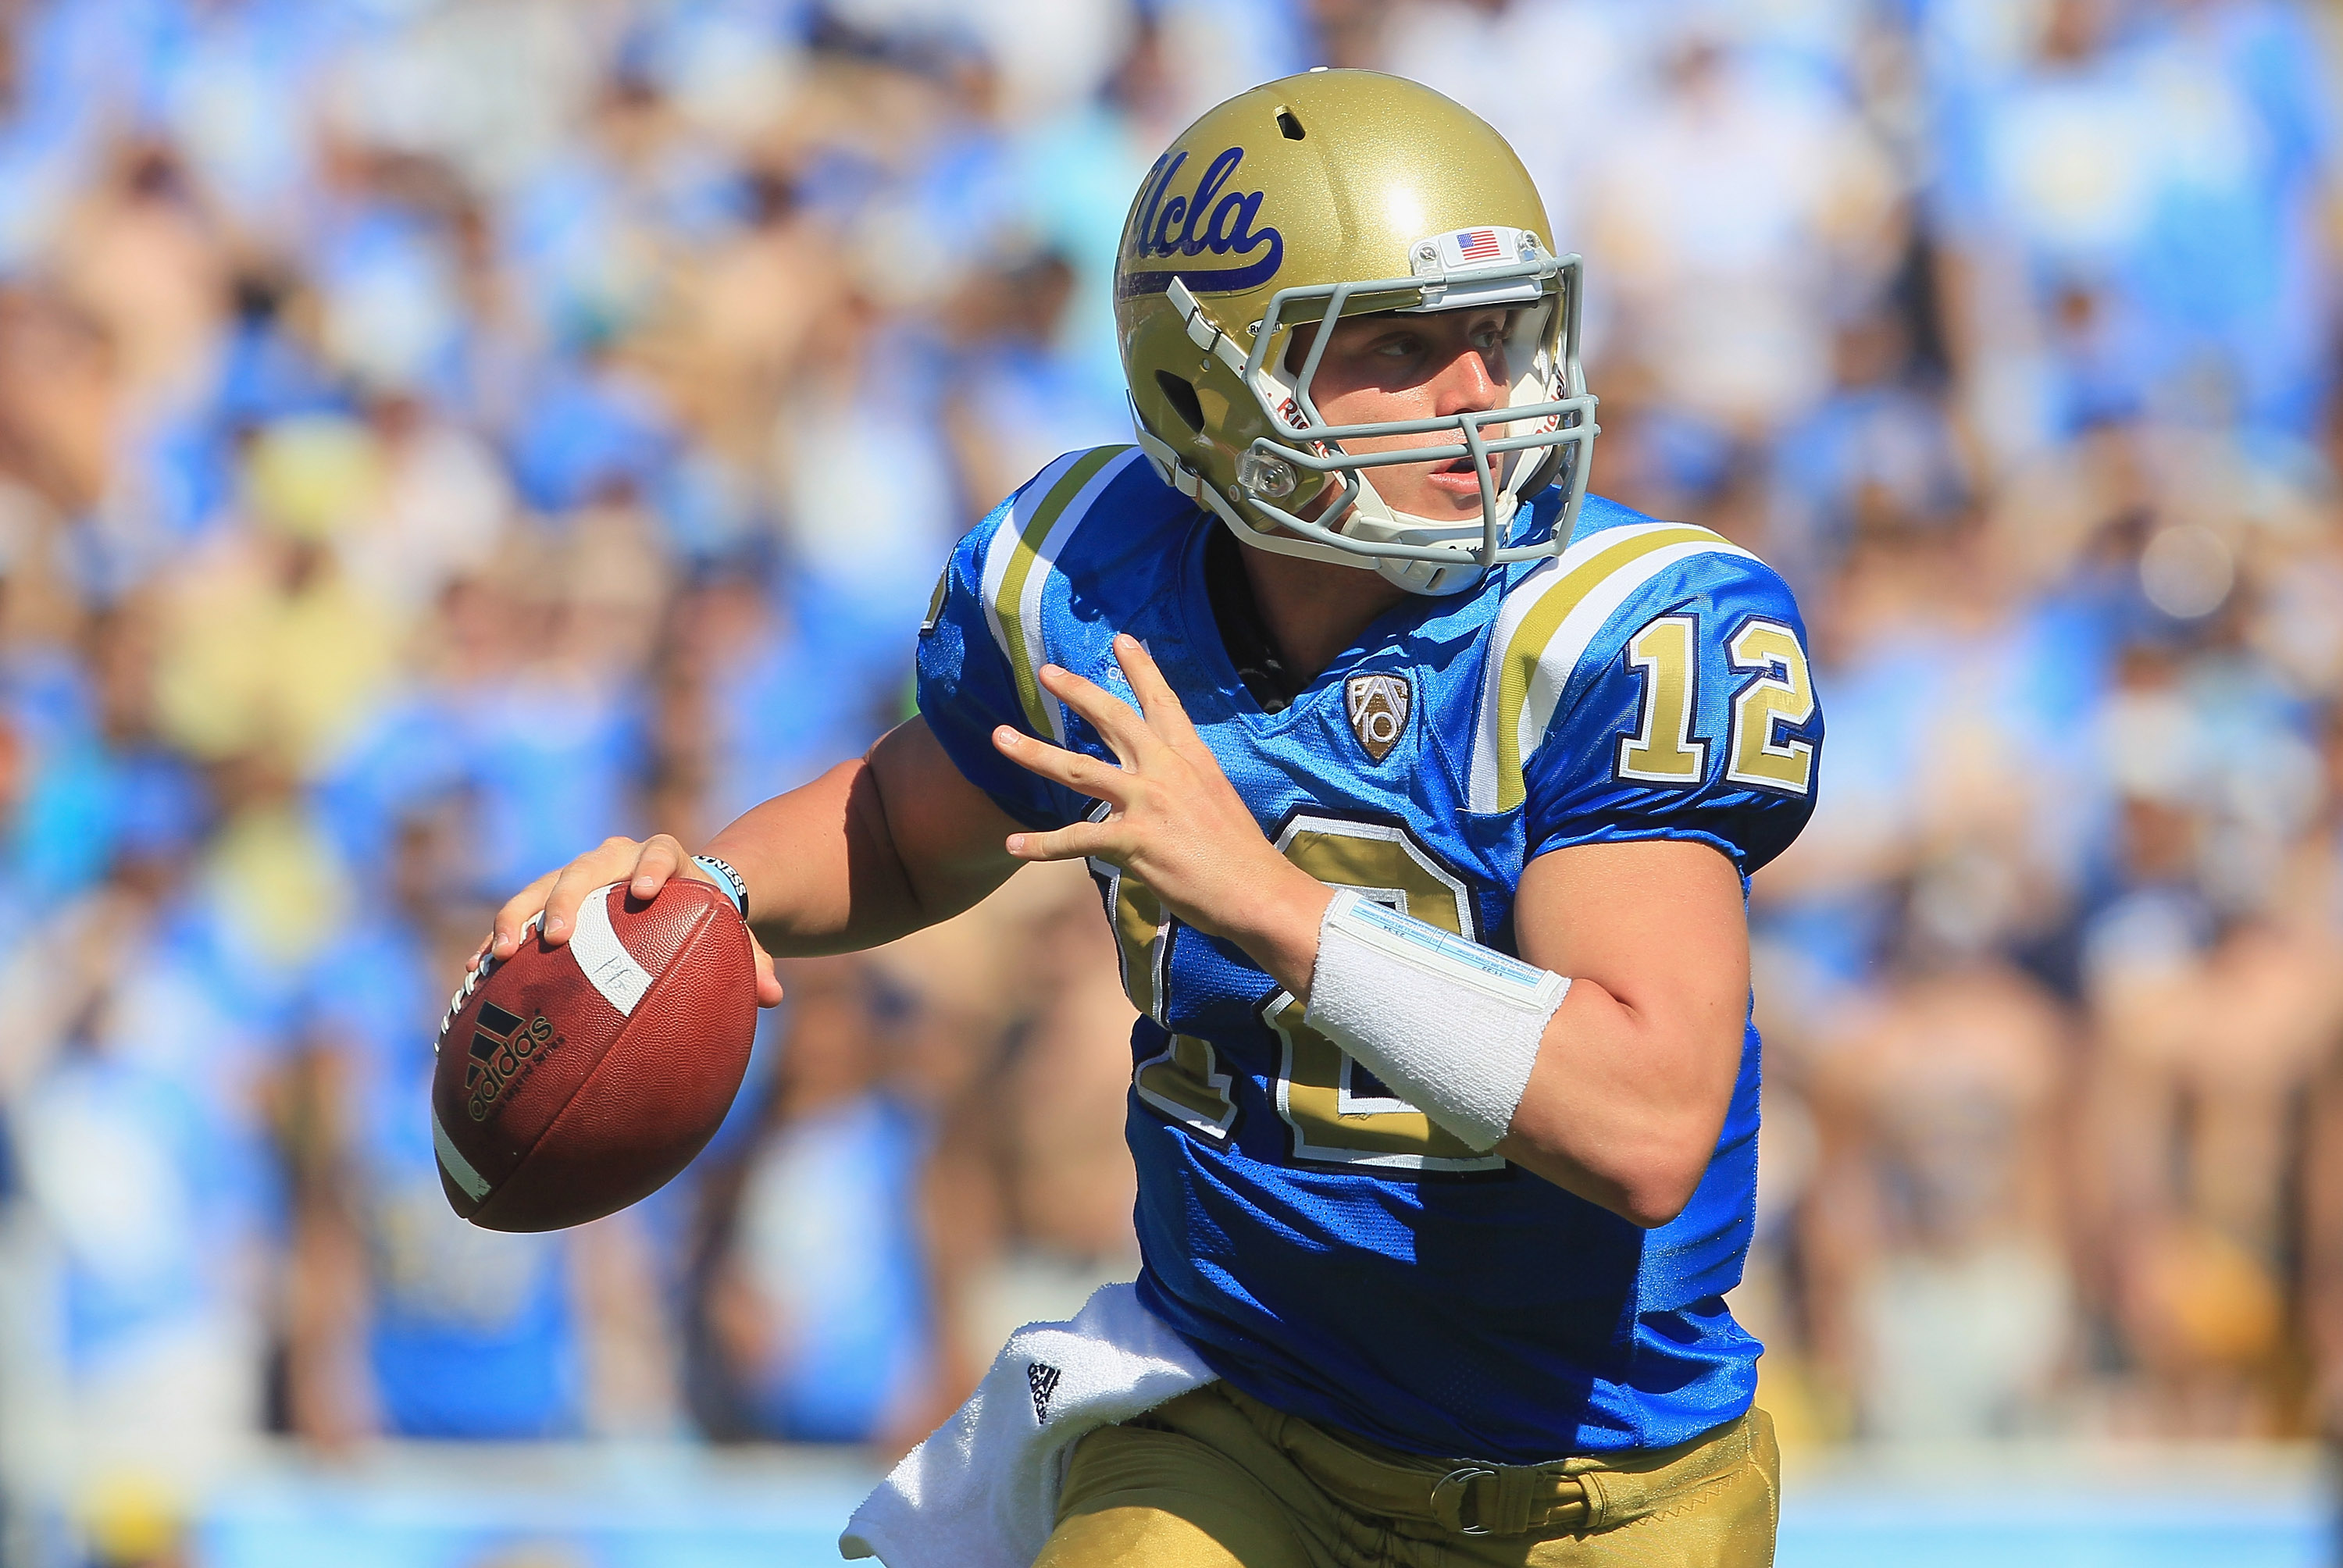 PASADENA, CA - OCTOBER 02:  Quarterback Richard Brehaut #12 of the UCLA Bruins looks down field for an open receiver against the Washington State Cougars during the third quarter at the Rose Bowl on October 2, 2010 in Pasadena, California. UCLA defeated W